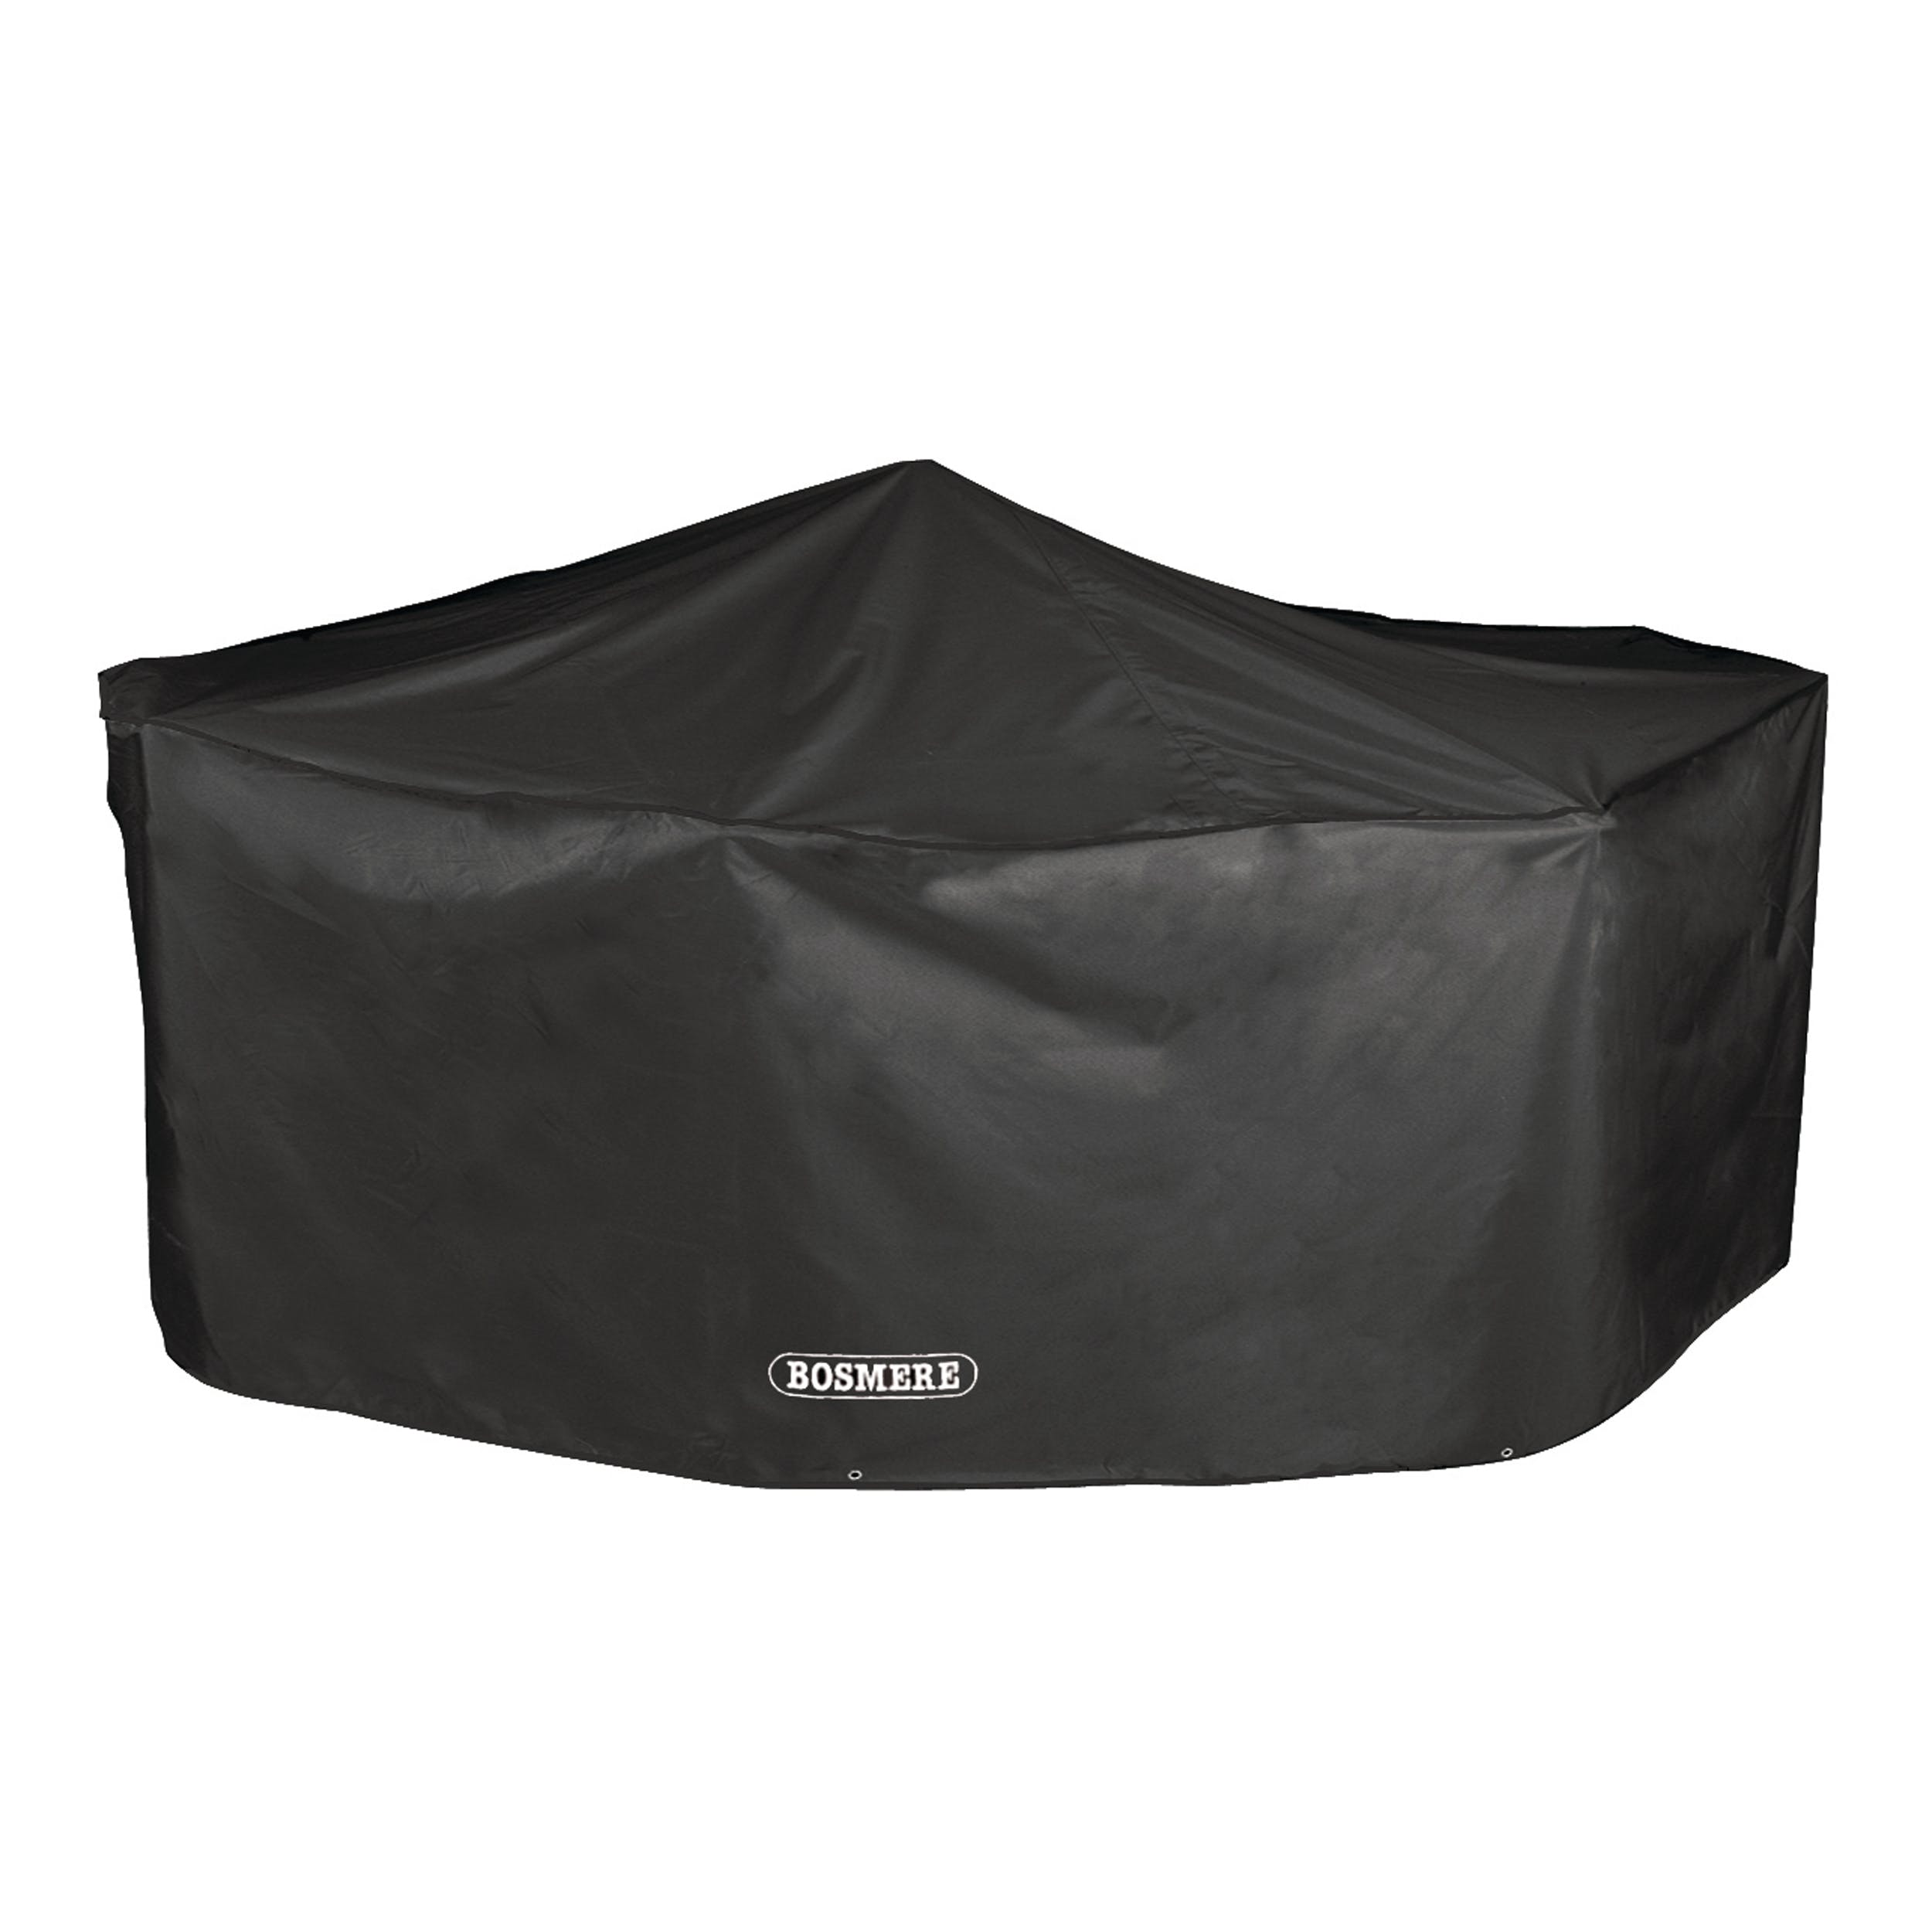 Outdoor Furniture Cover in Small or Large | Garden Trading